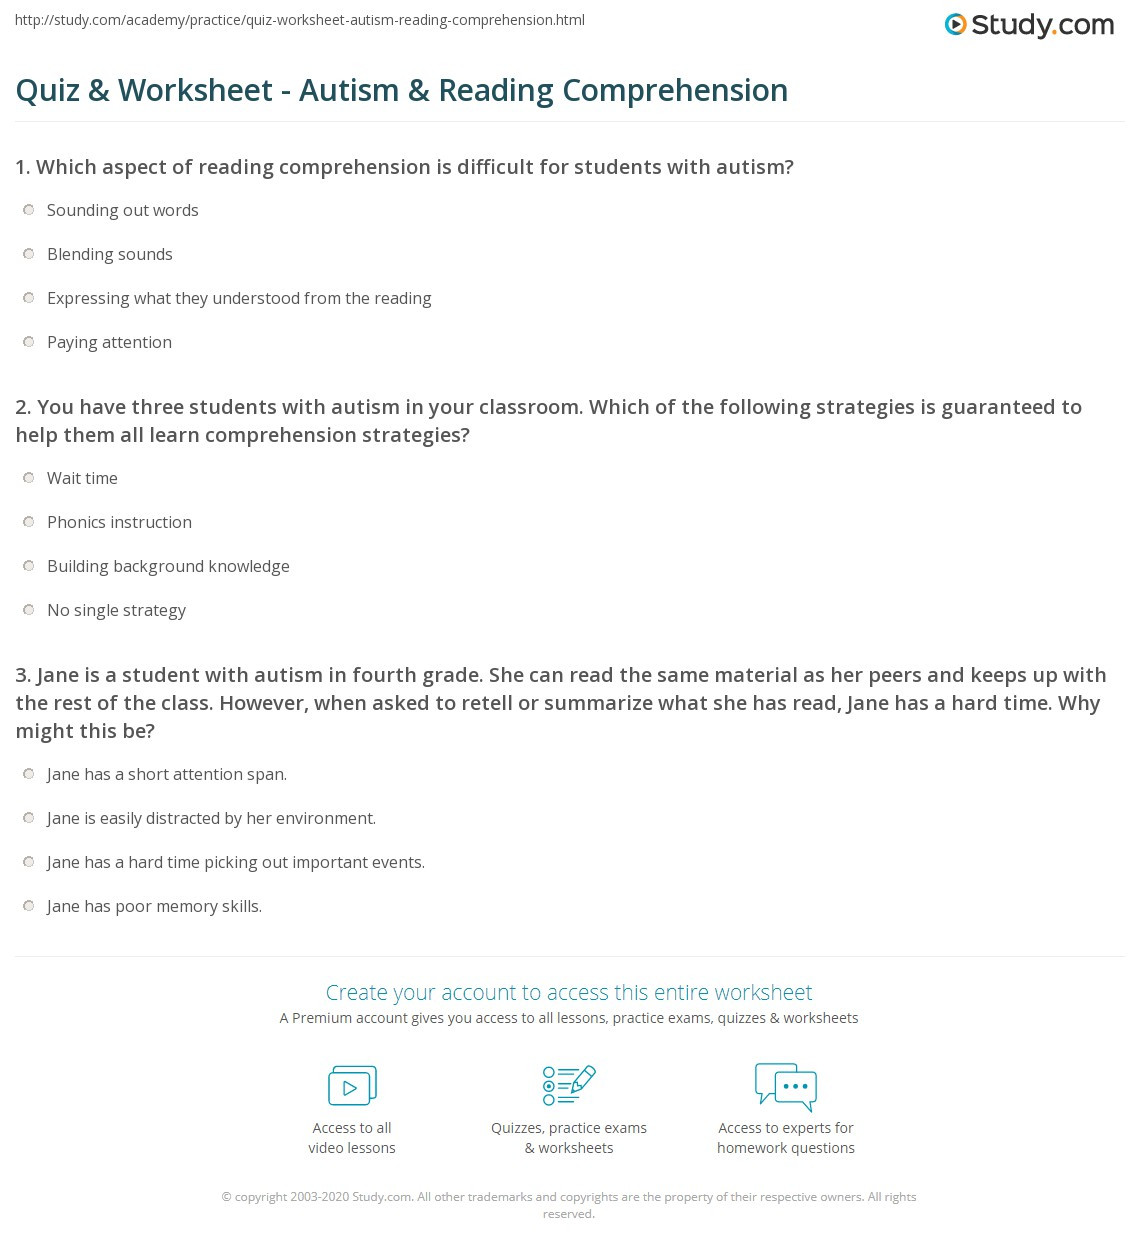 Autism Reading Comprehension Worksheets Quiz & Worksheet Autism & Reading Prehension